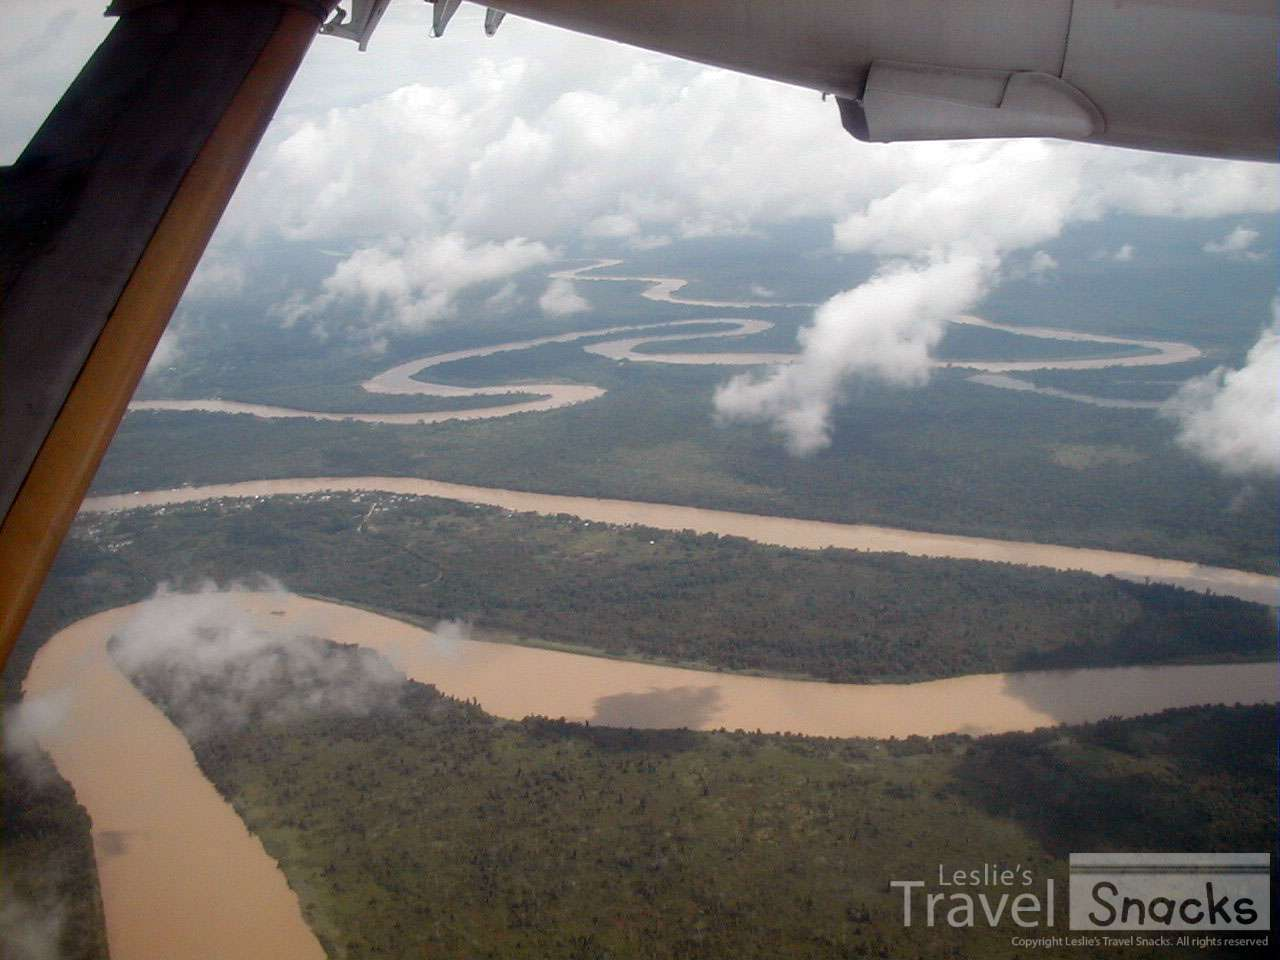 Flying over a winding river in Borneo.